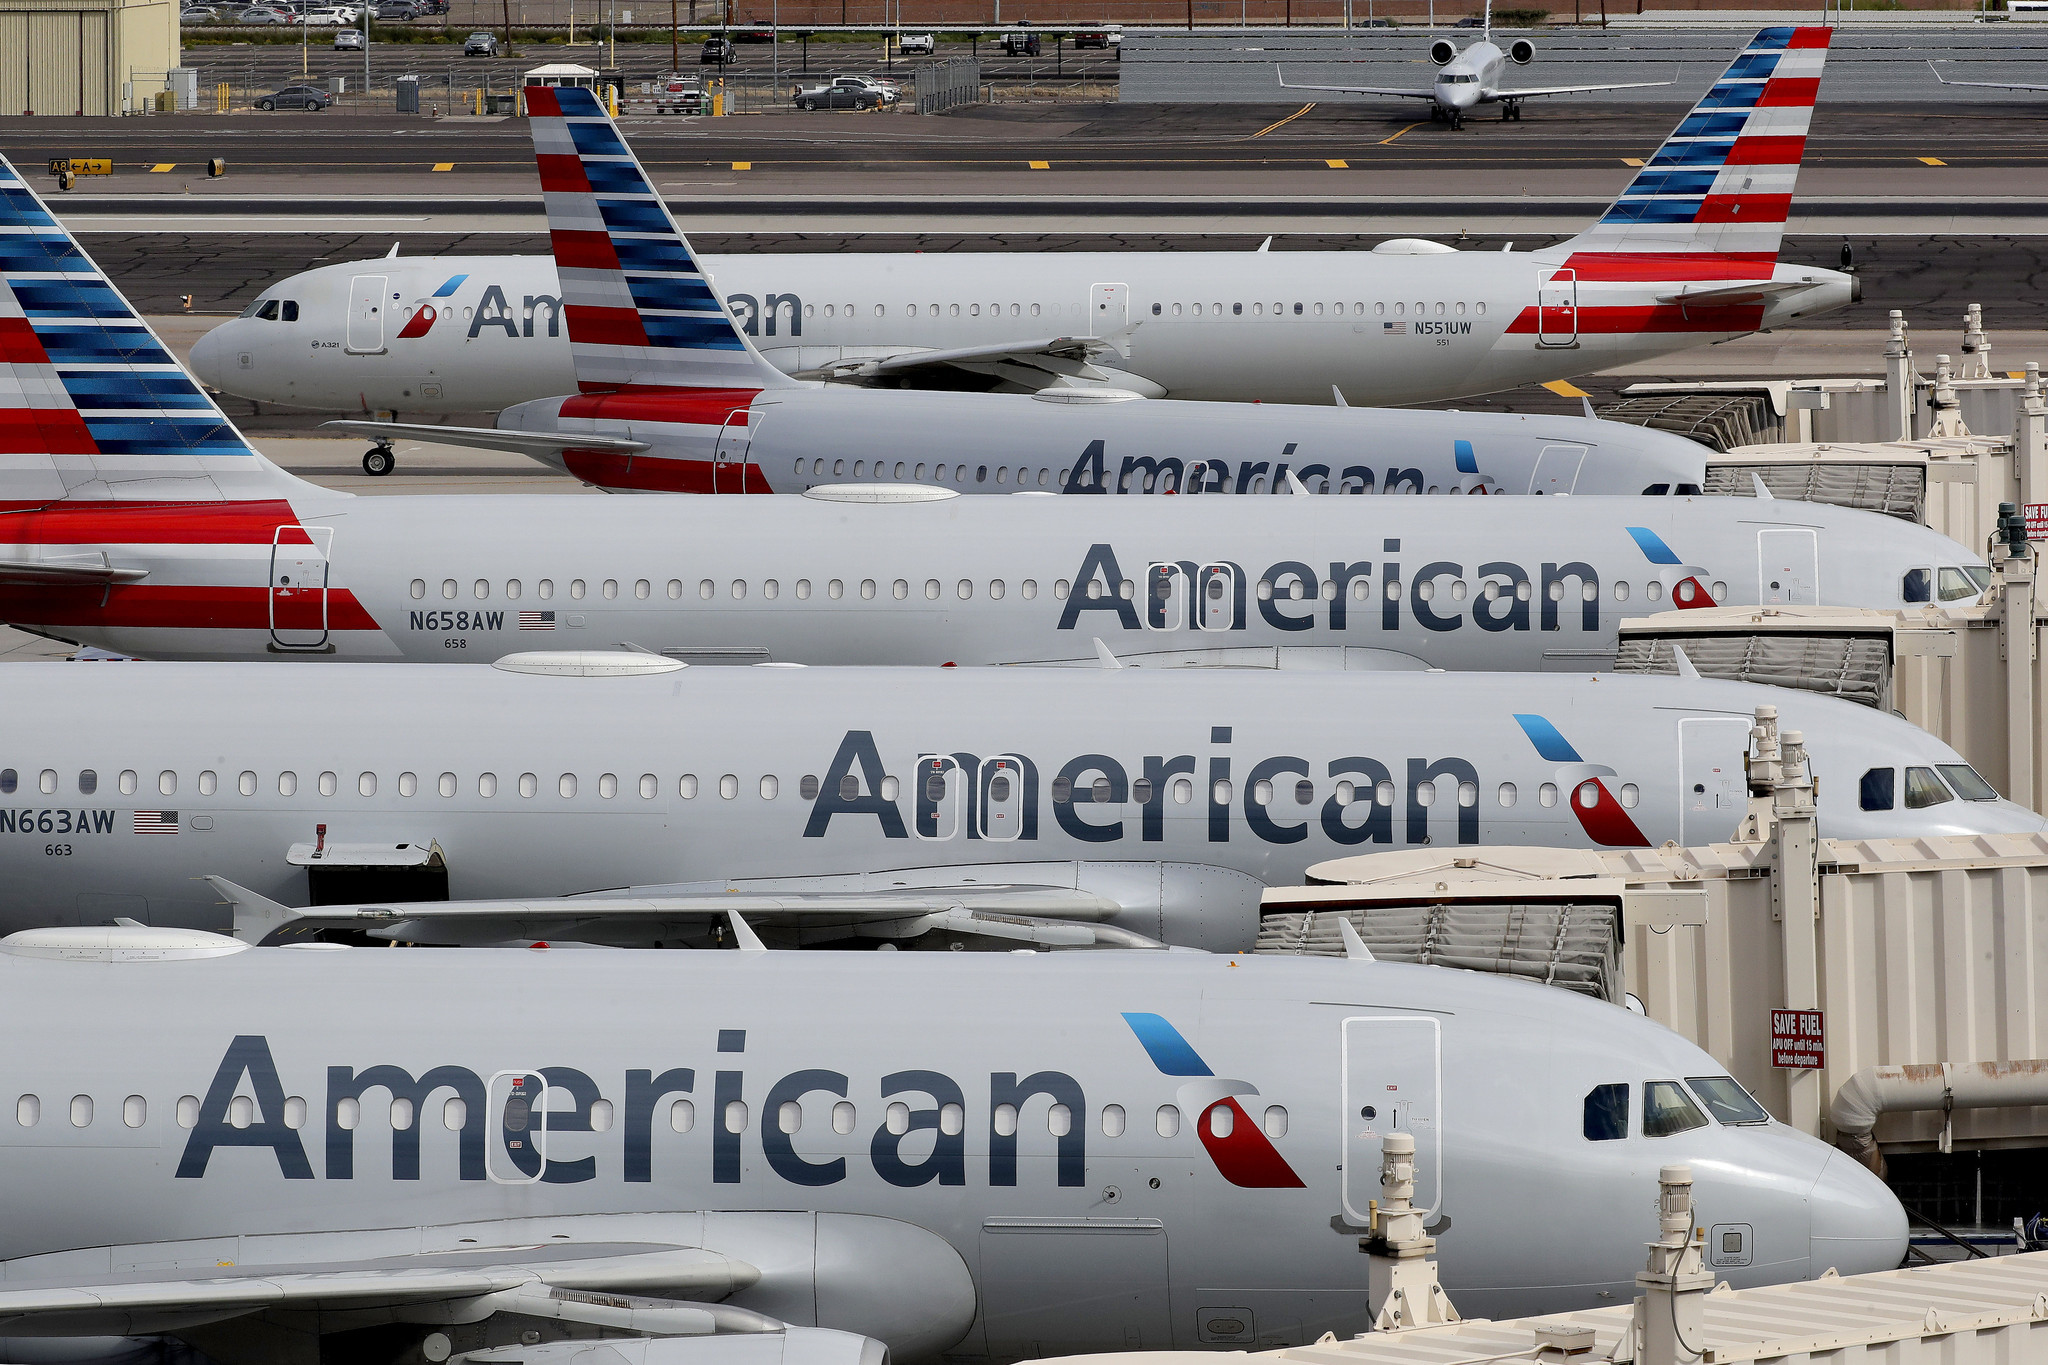 Long-time American Airlines flight attendant dies from coronavirus complications